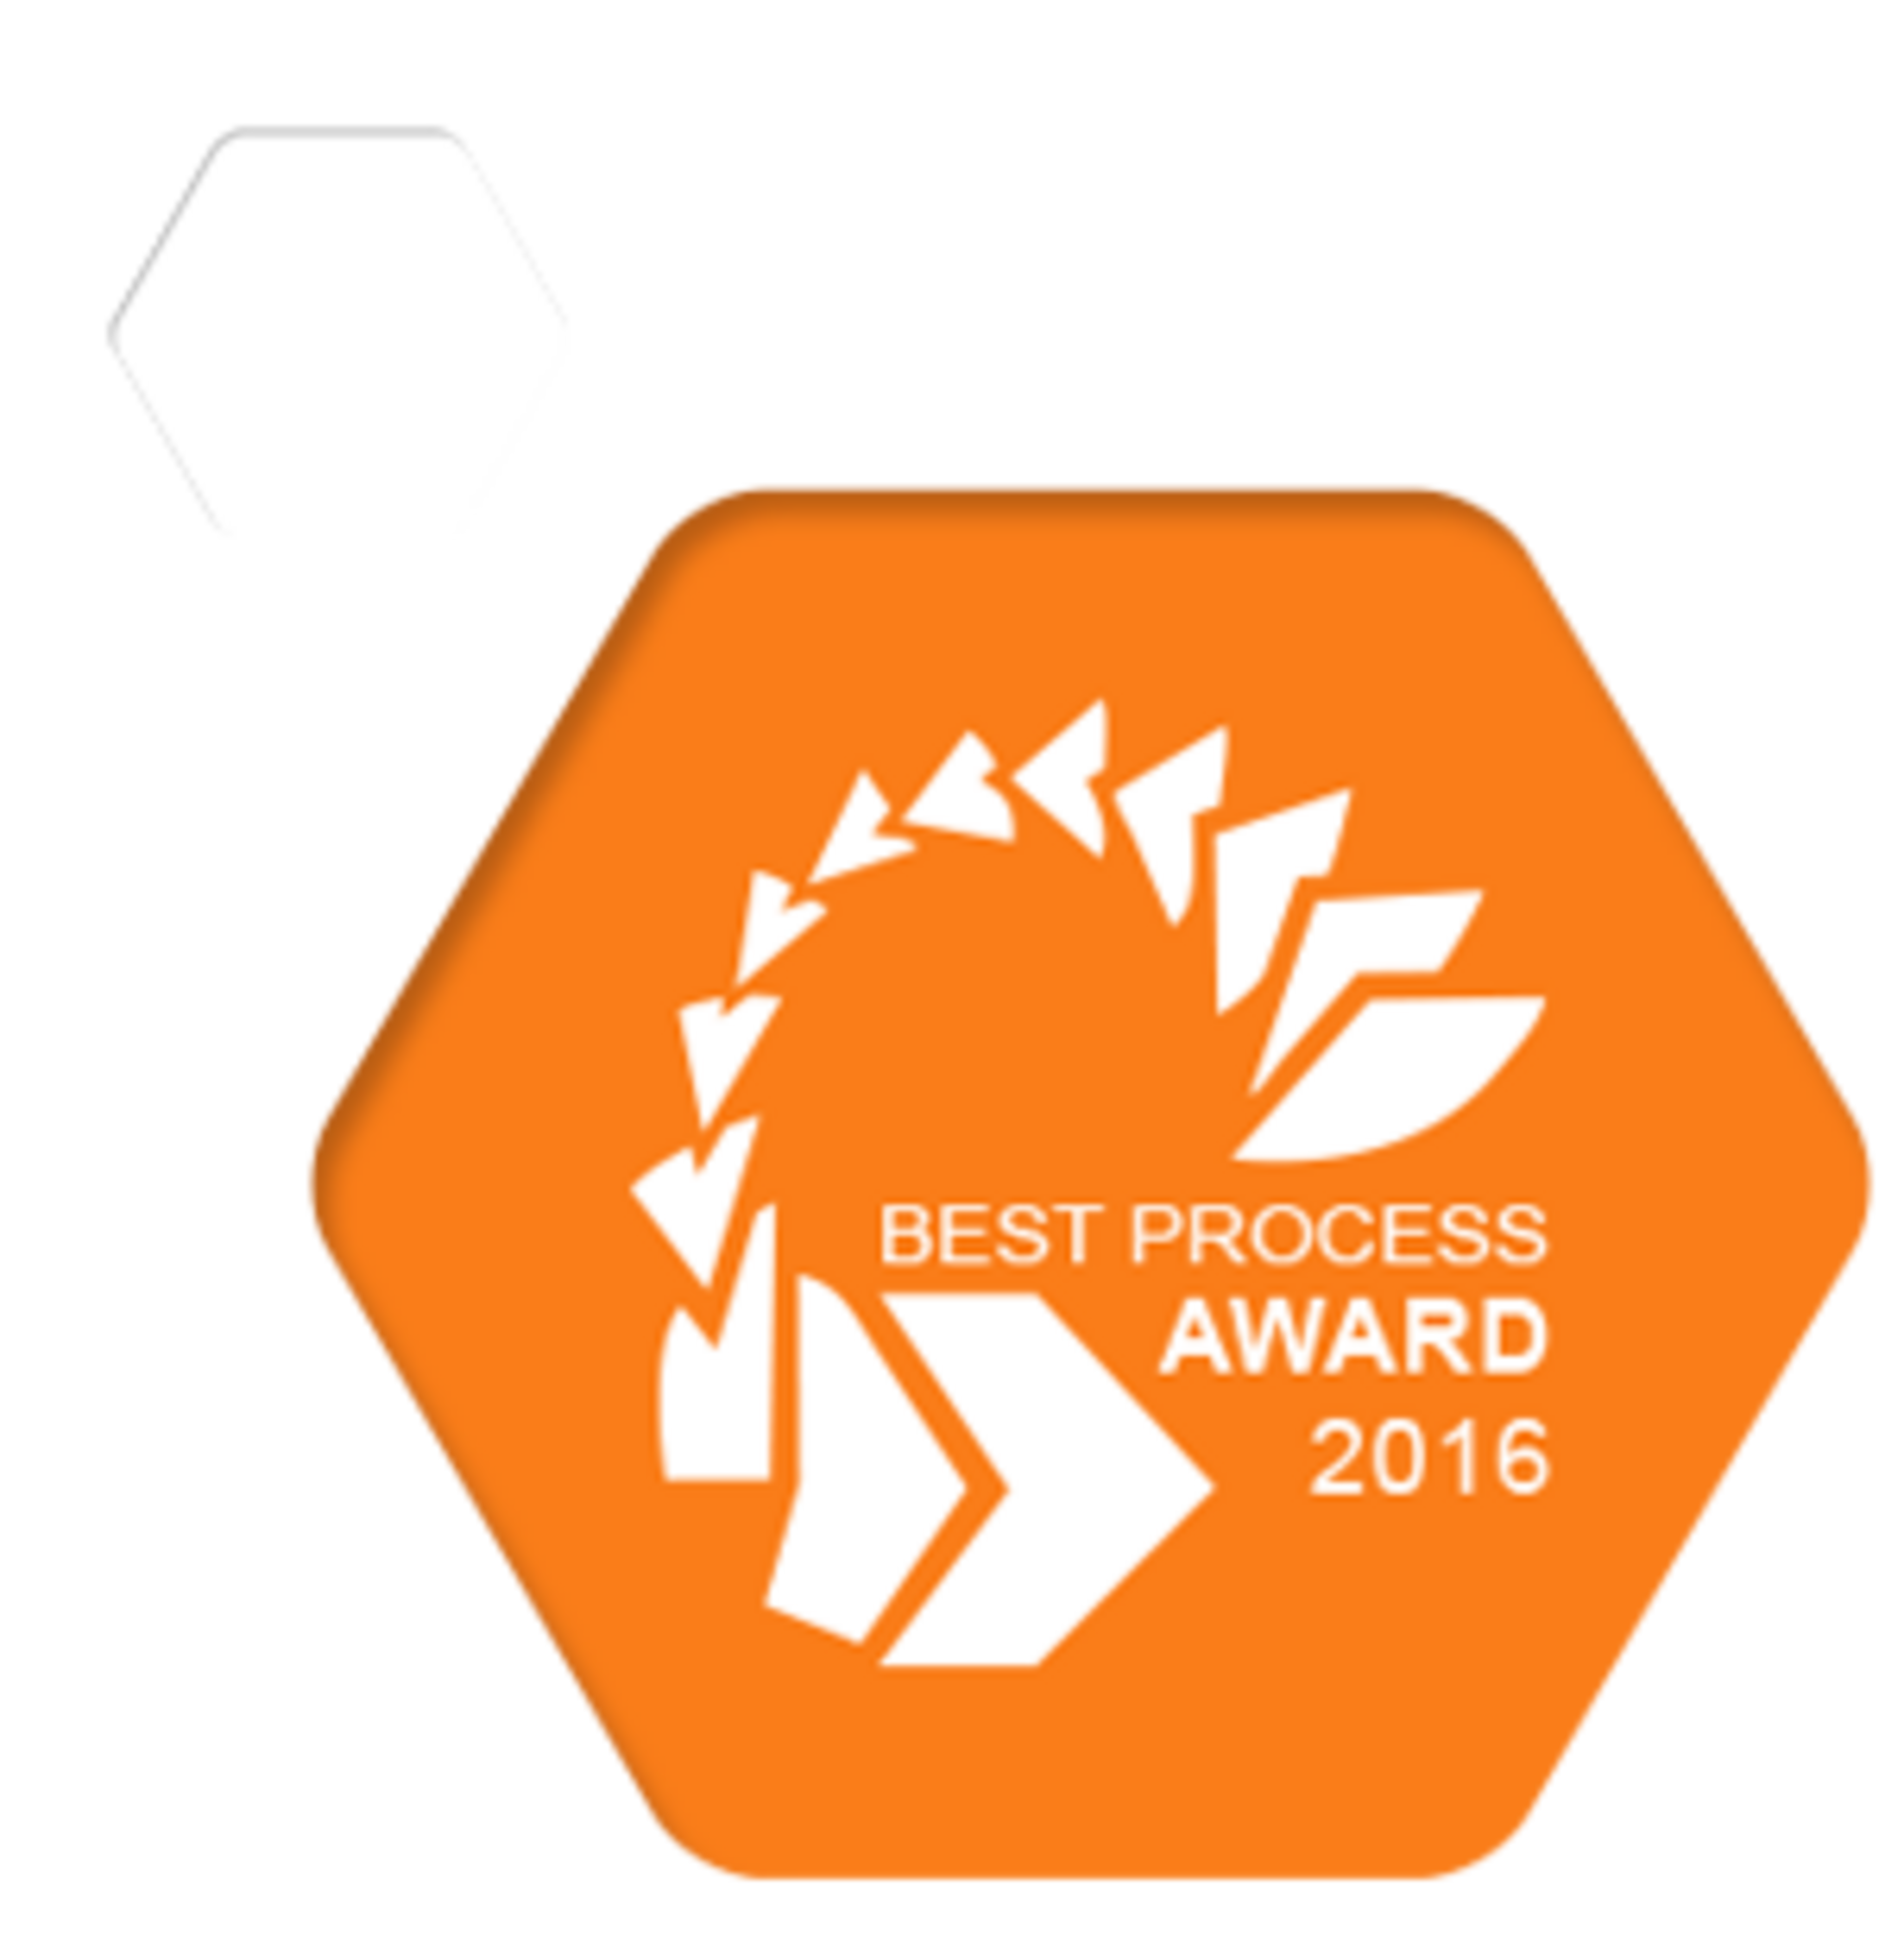 Best Process Award 2017